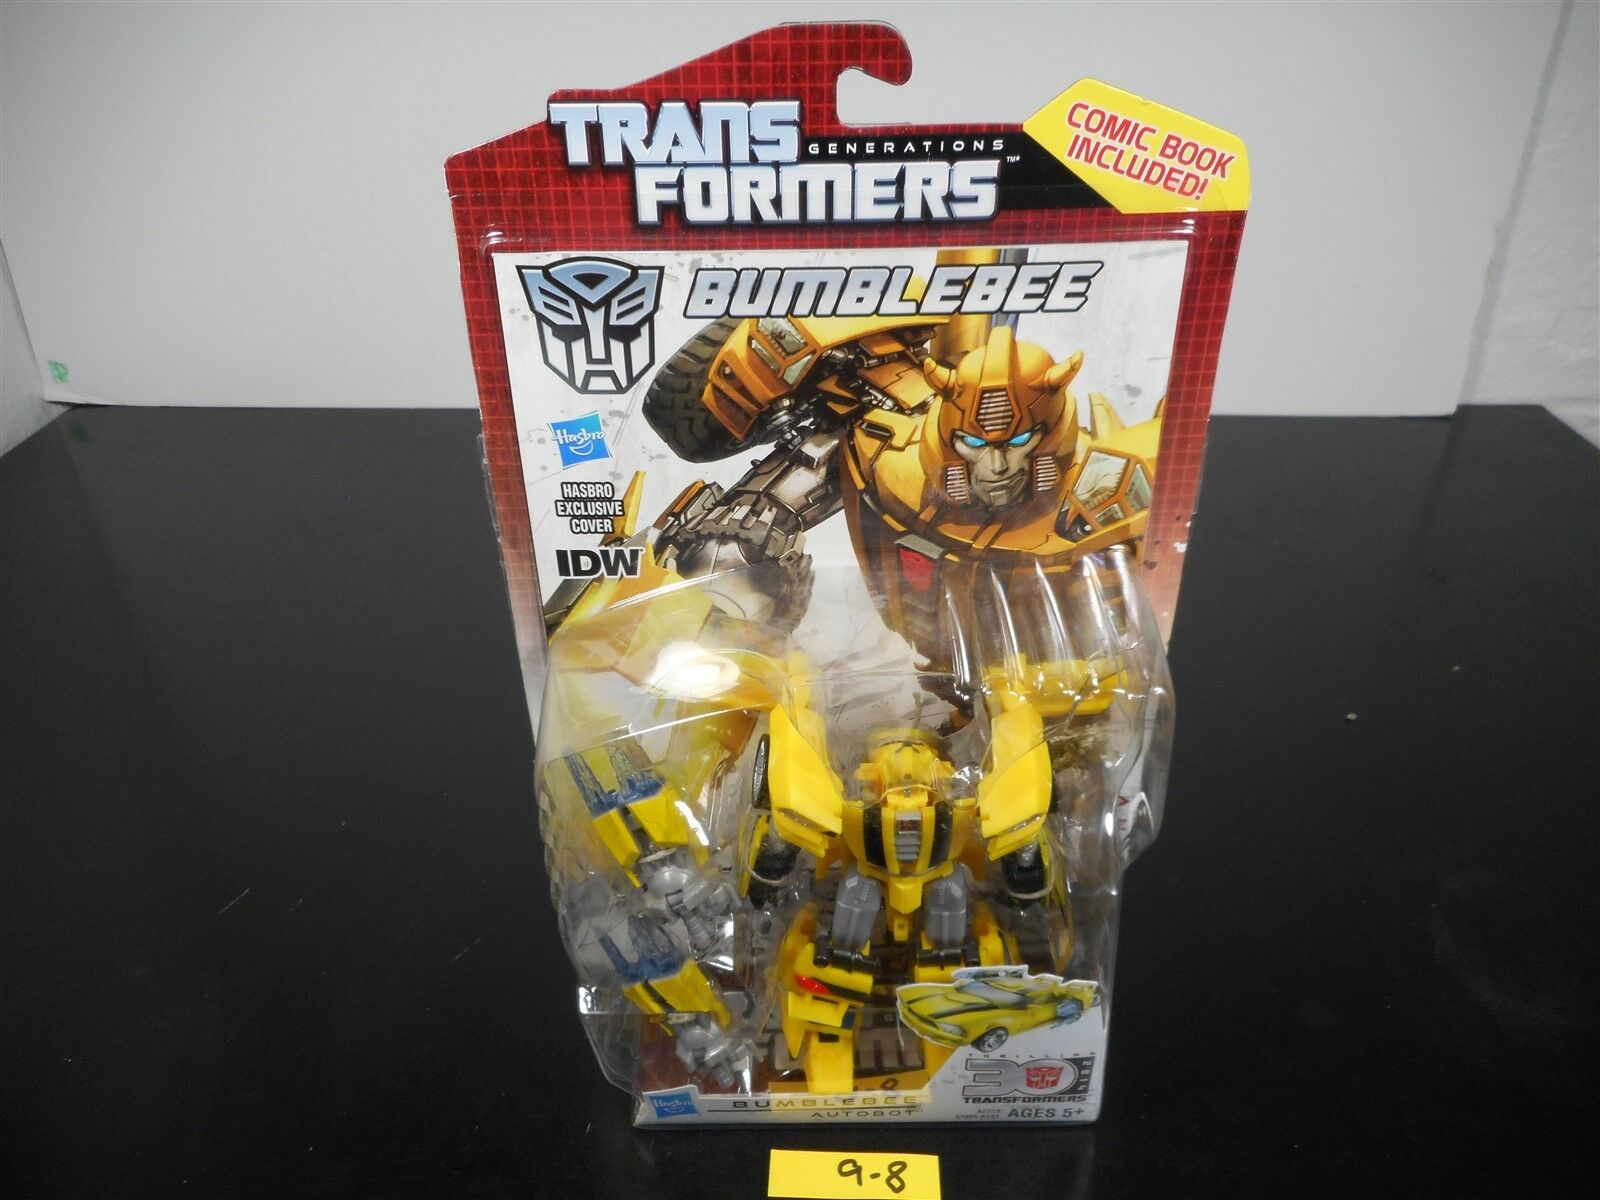 NEW & SEALED   TRANSFORMERS GENERATIONS IDW BUMBLEBEE 30TH ANNIVERSARY COMIC 9-8